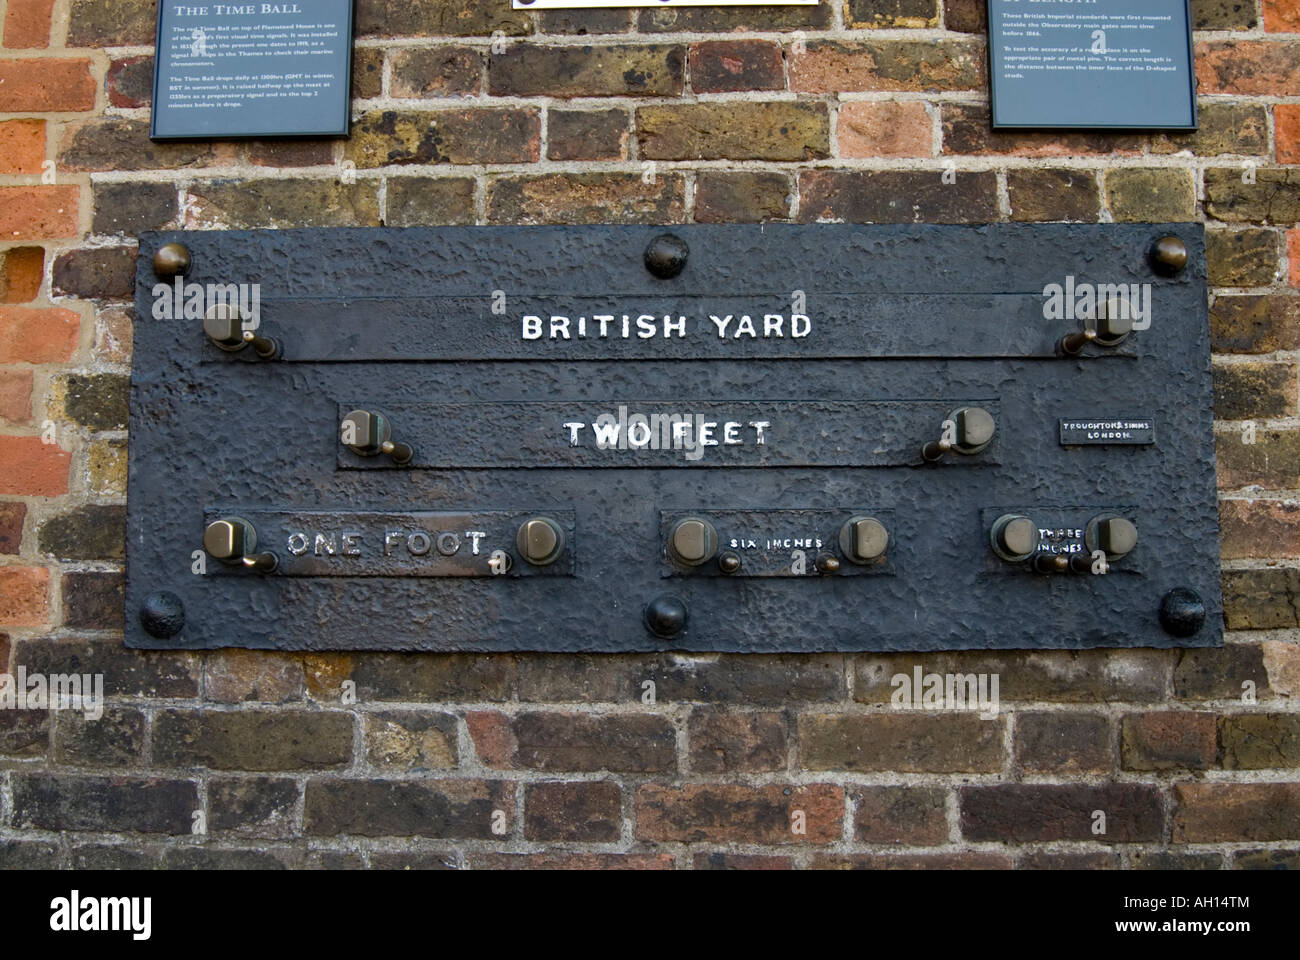 Imperial measurement gauge at the Royal Observatory in Greenwich London England UK - Stock Image